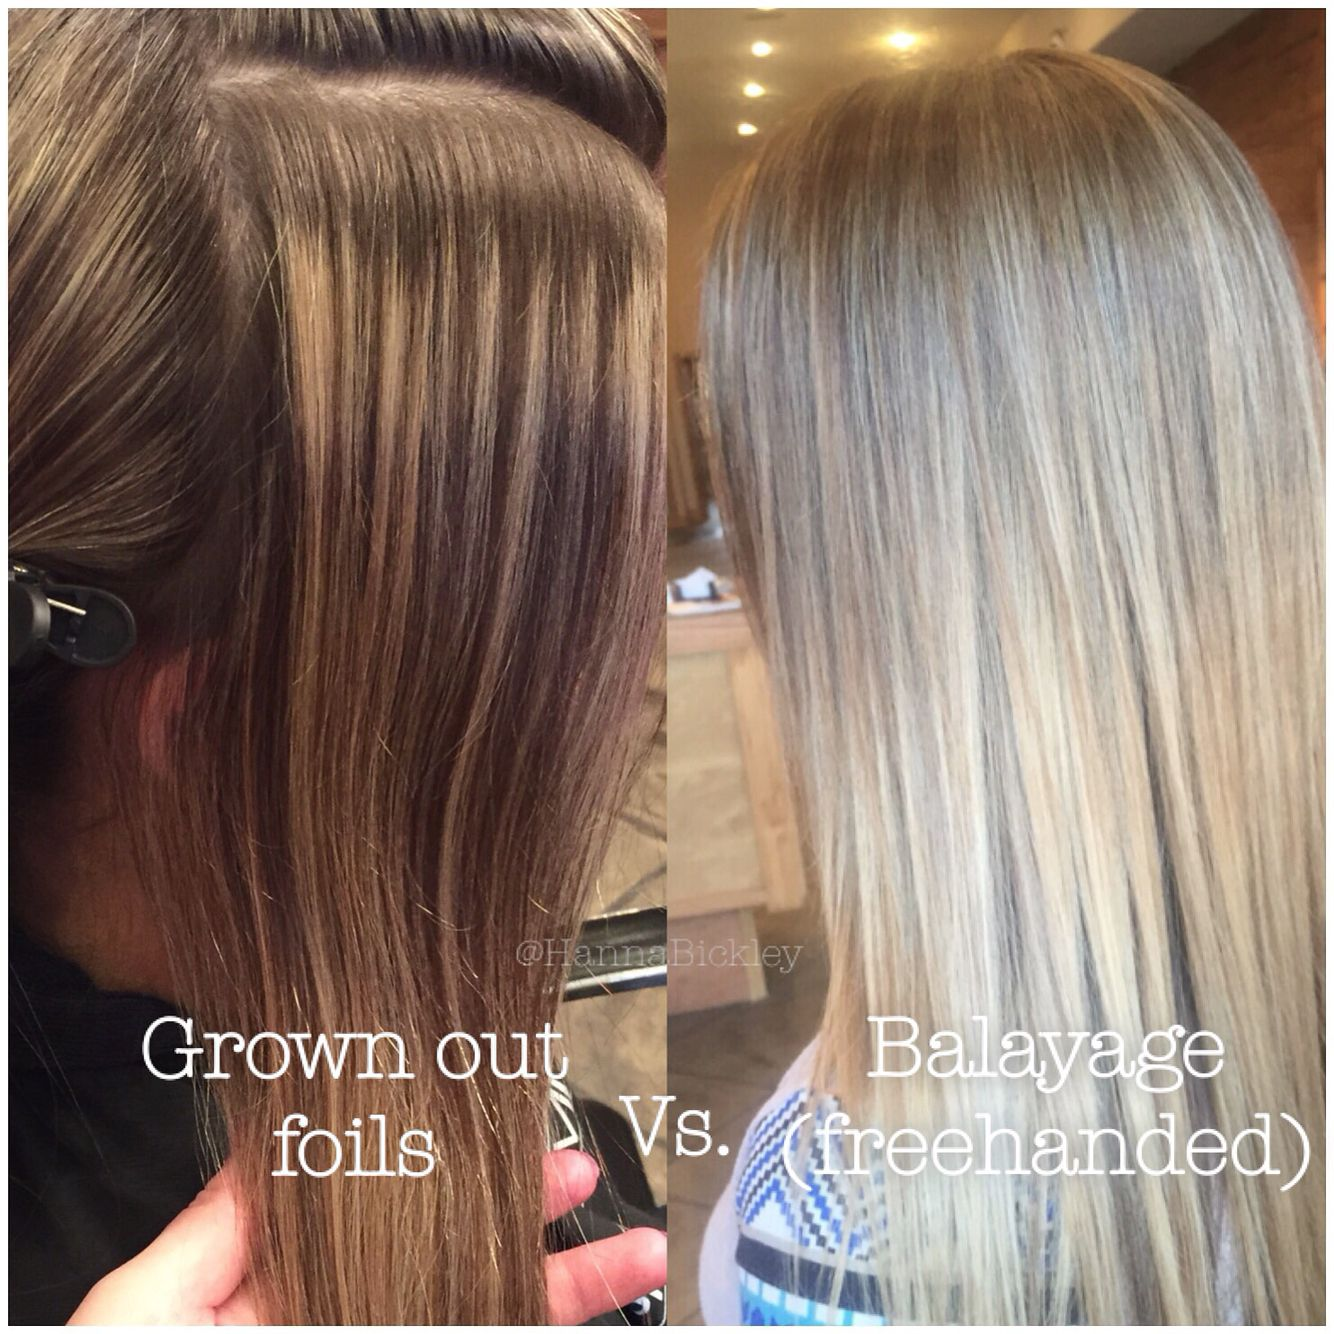 Traditional grown out foils/foiled highlights vs. Balayage